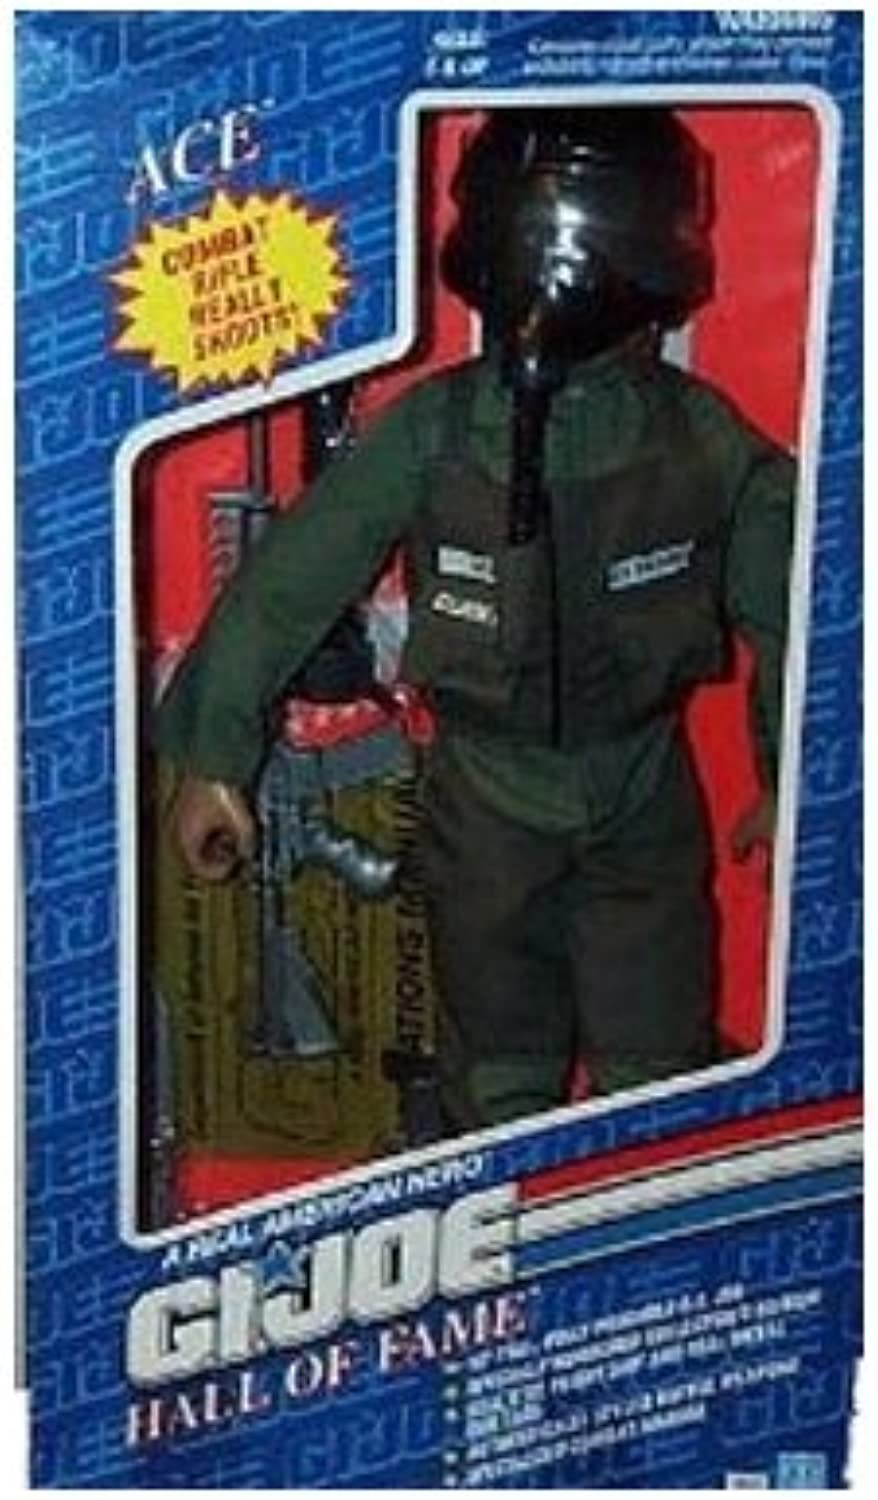 G.I. Joe Ace Air Force Pilot 12 Action Figure Hall of Fame by G. I. Joe